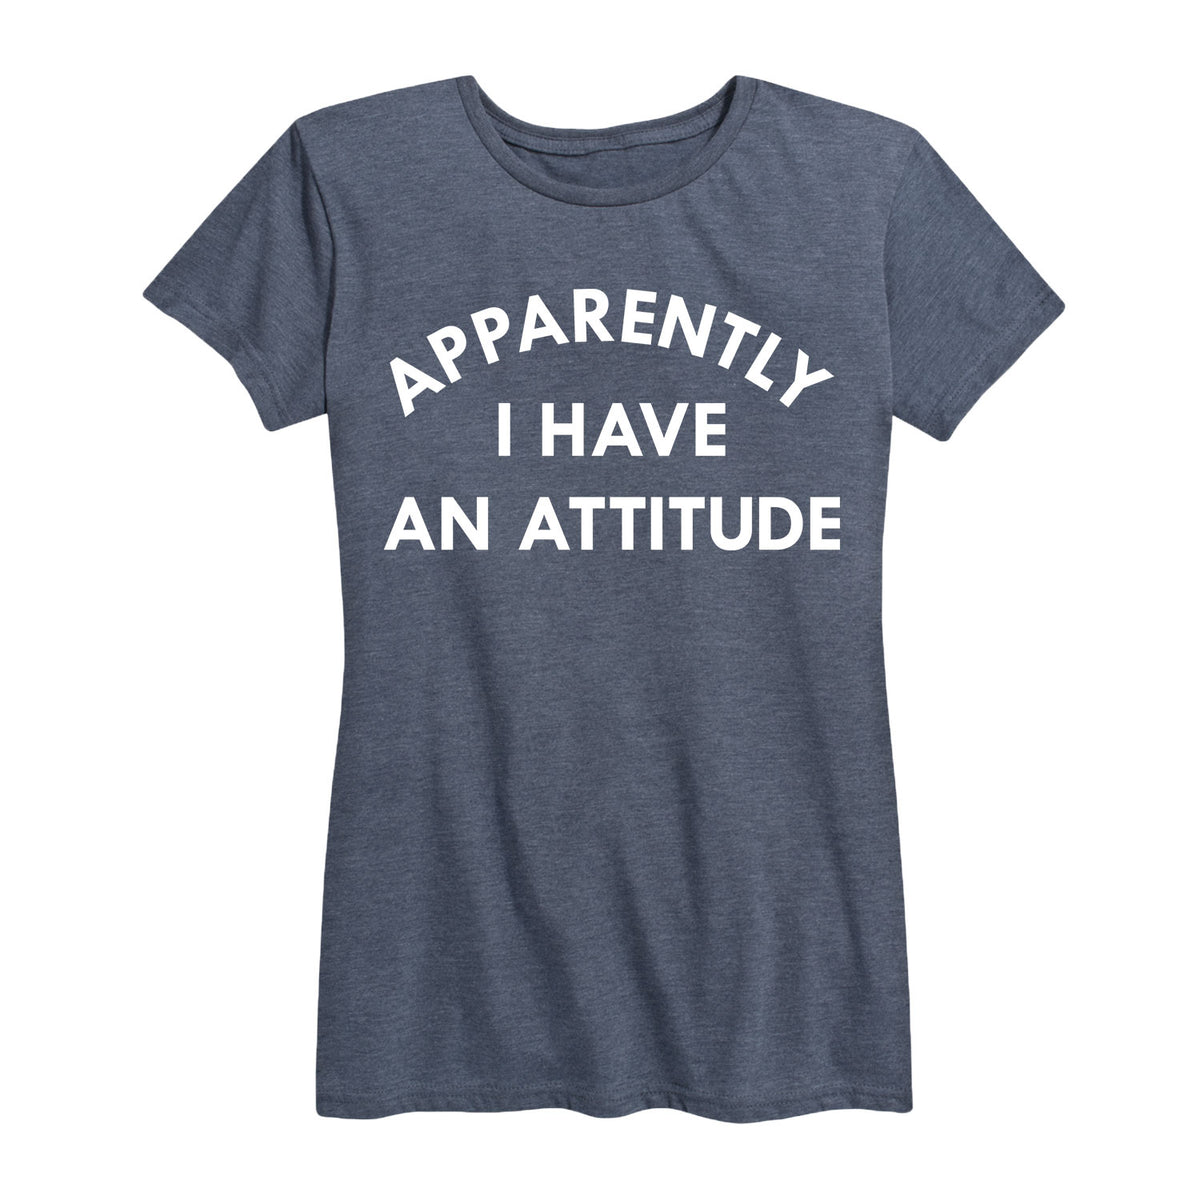 Apparently I Have An Attitude - Women's Short Sleeve T-Shirt